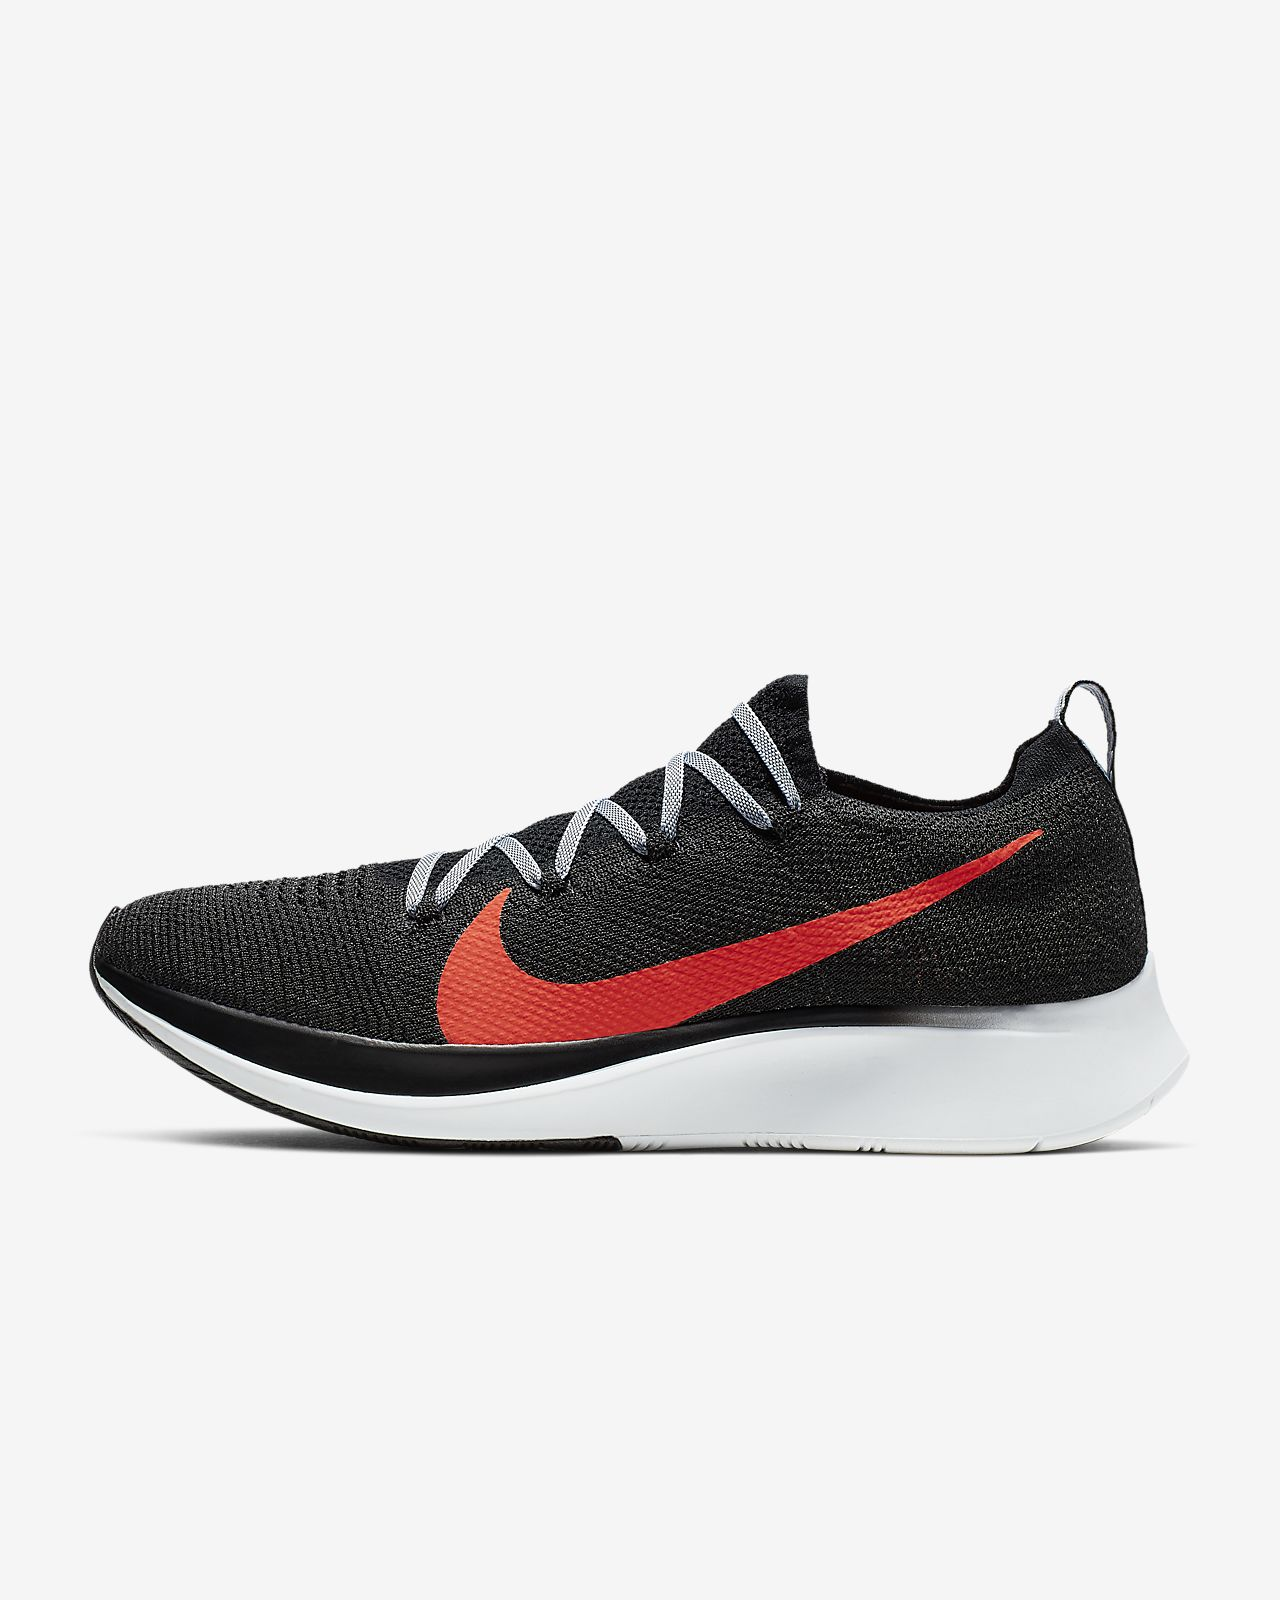 9a592361b889 Nike Zoom Fly Flyknit Men s Running Shoe. Nike.com